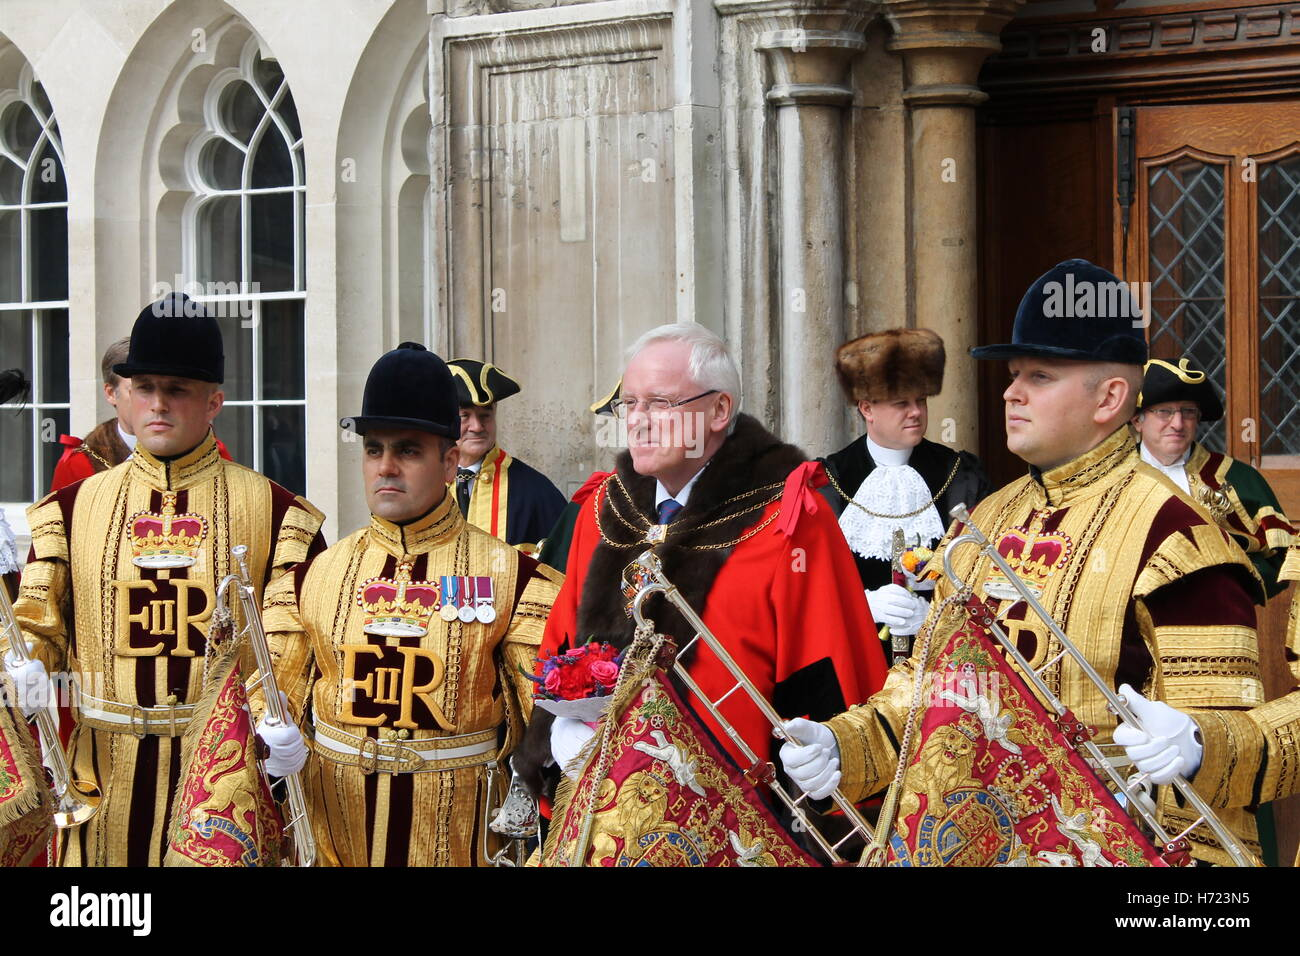 Lord Mayor of  London Elect 2016 with Heralds - Stock Image